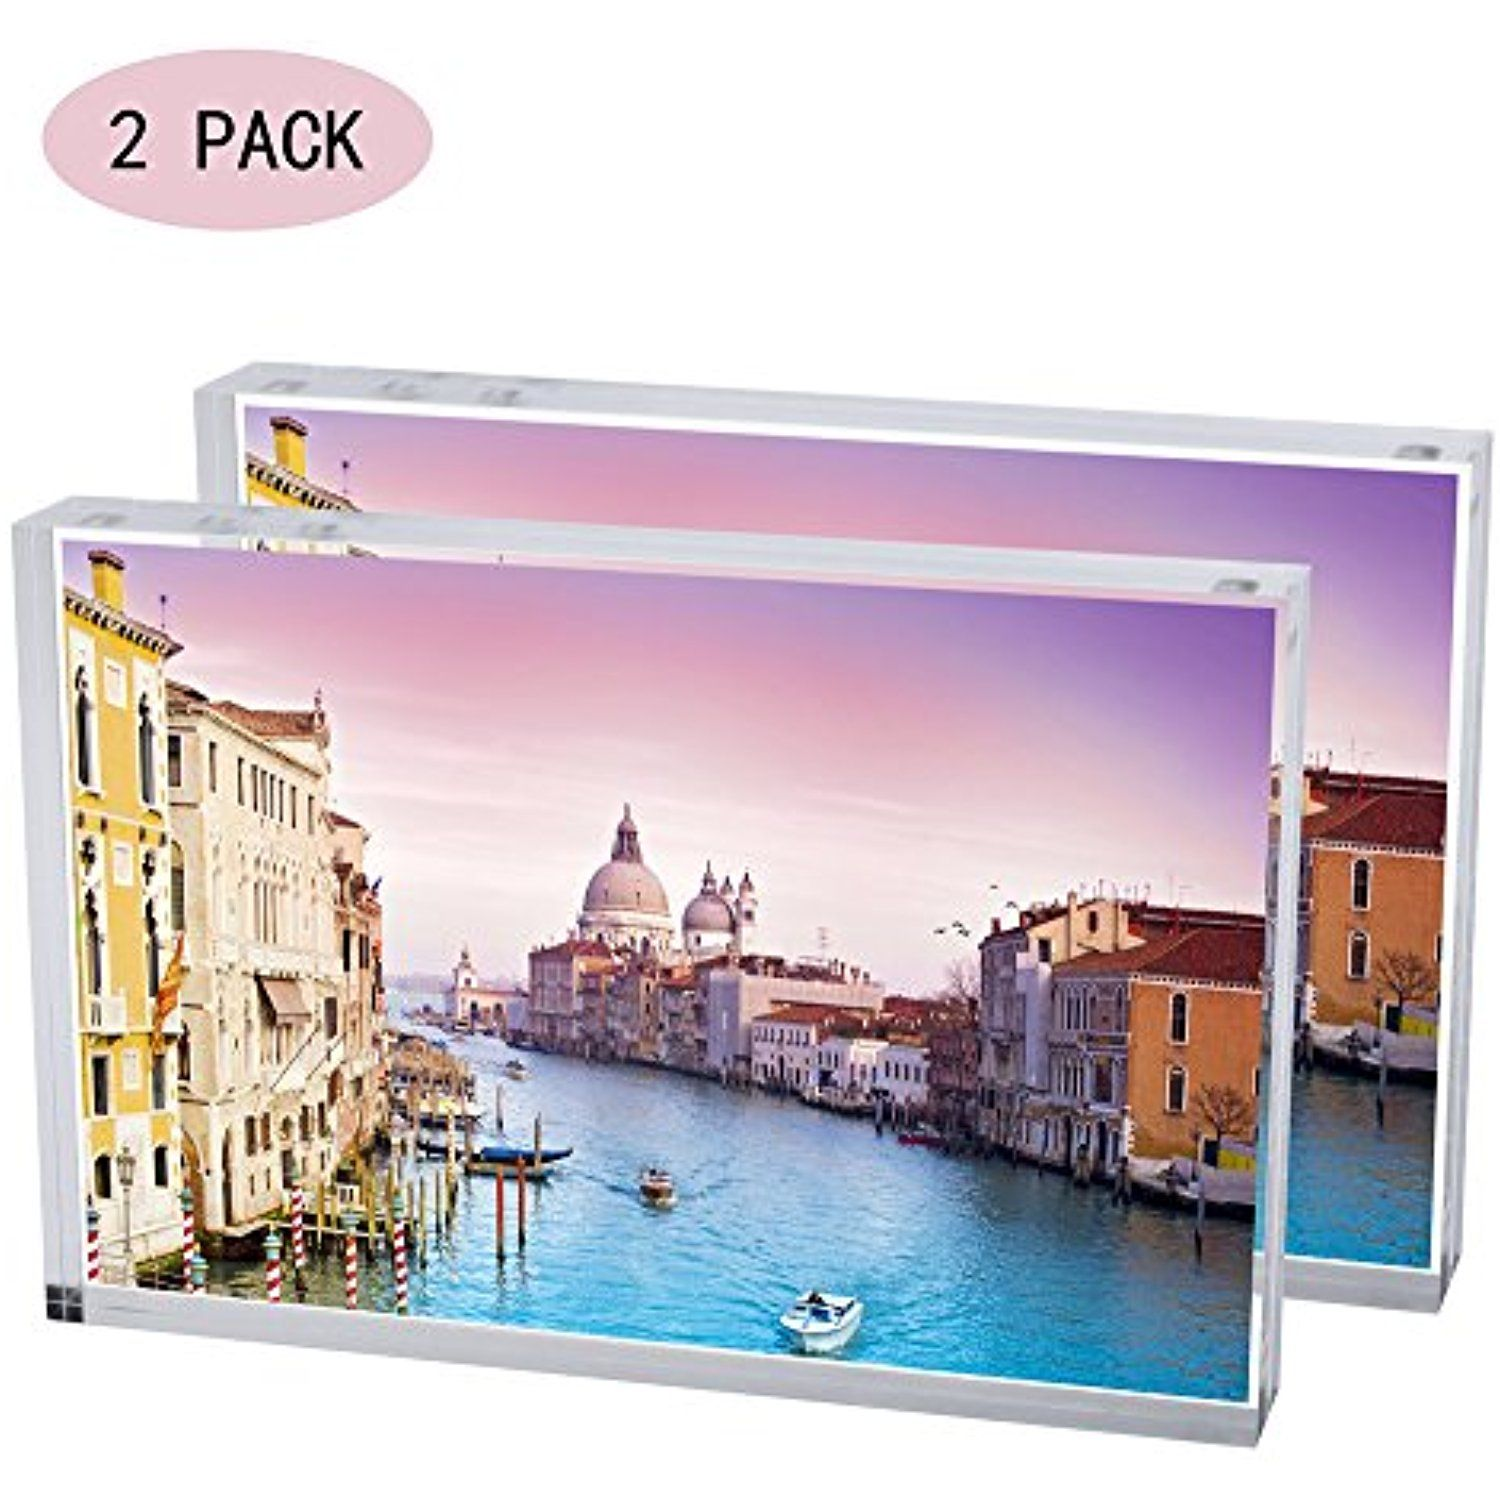 Display4top Acrylic Magnet Photo Frame Double Sided Clear Picture